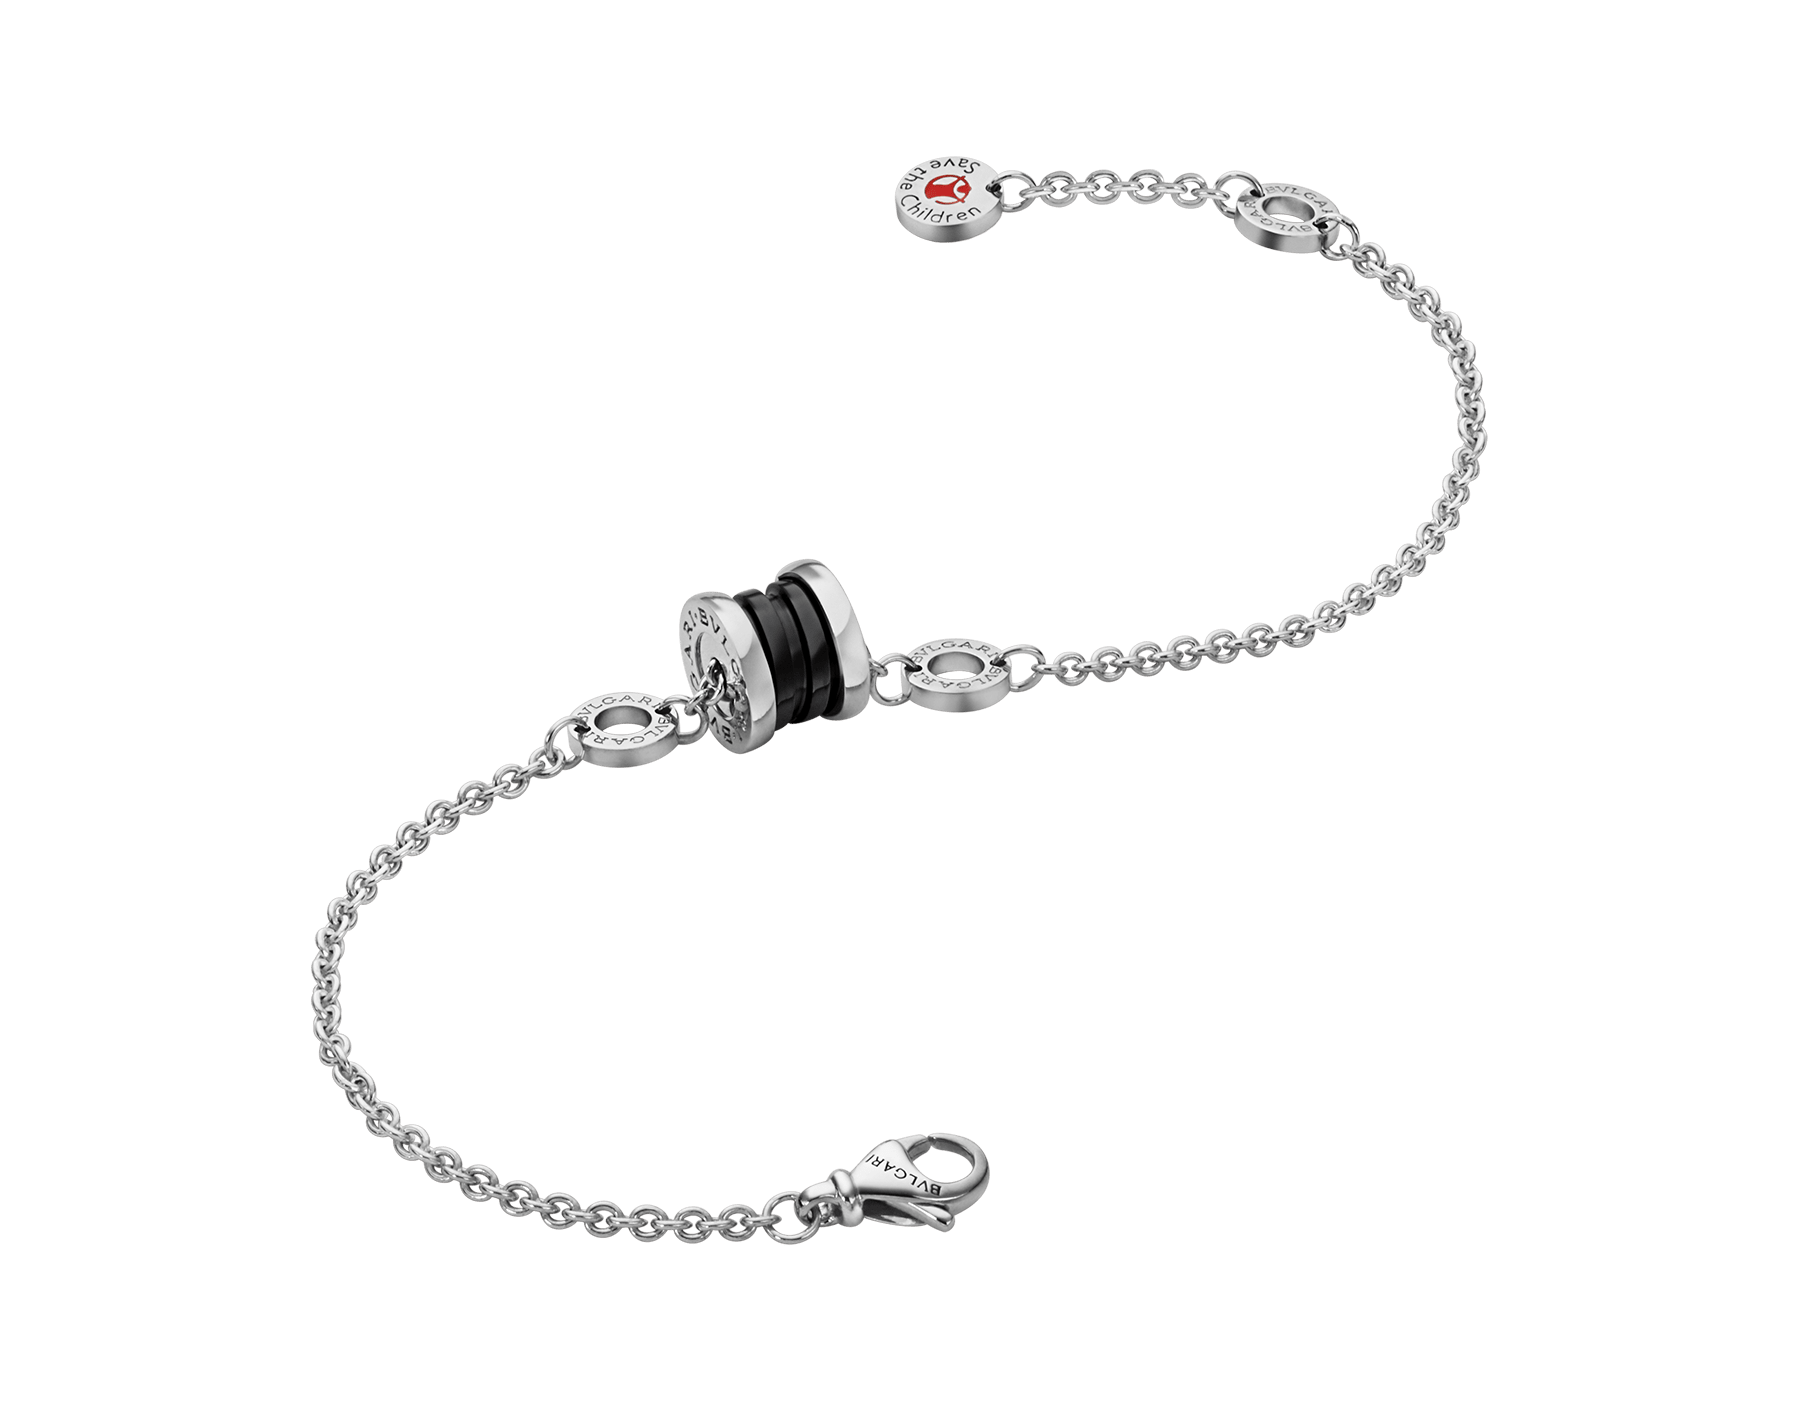 Save The Children bracelet in sterling silver and black ceramic BR857428 image 2